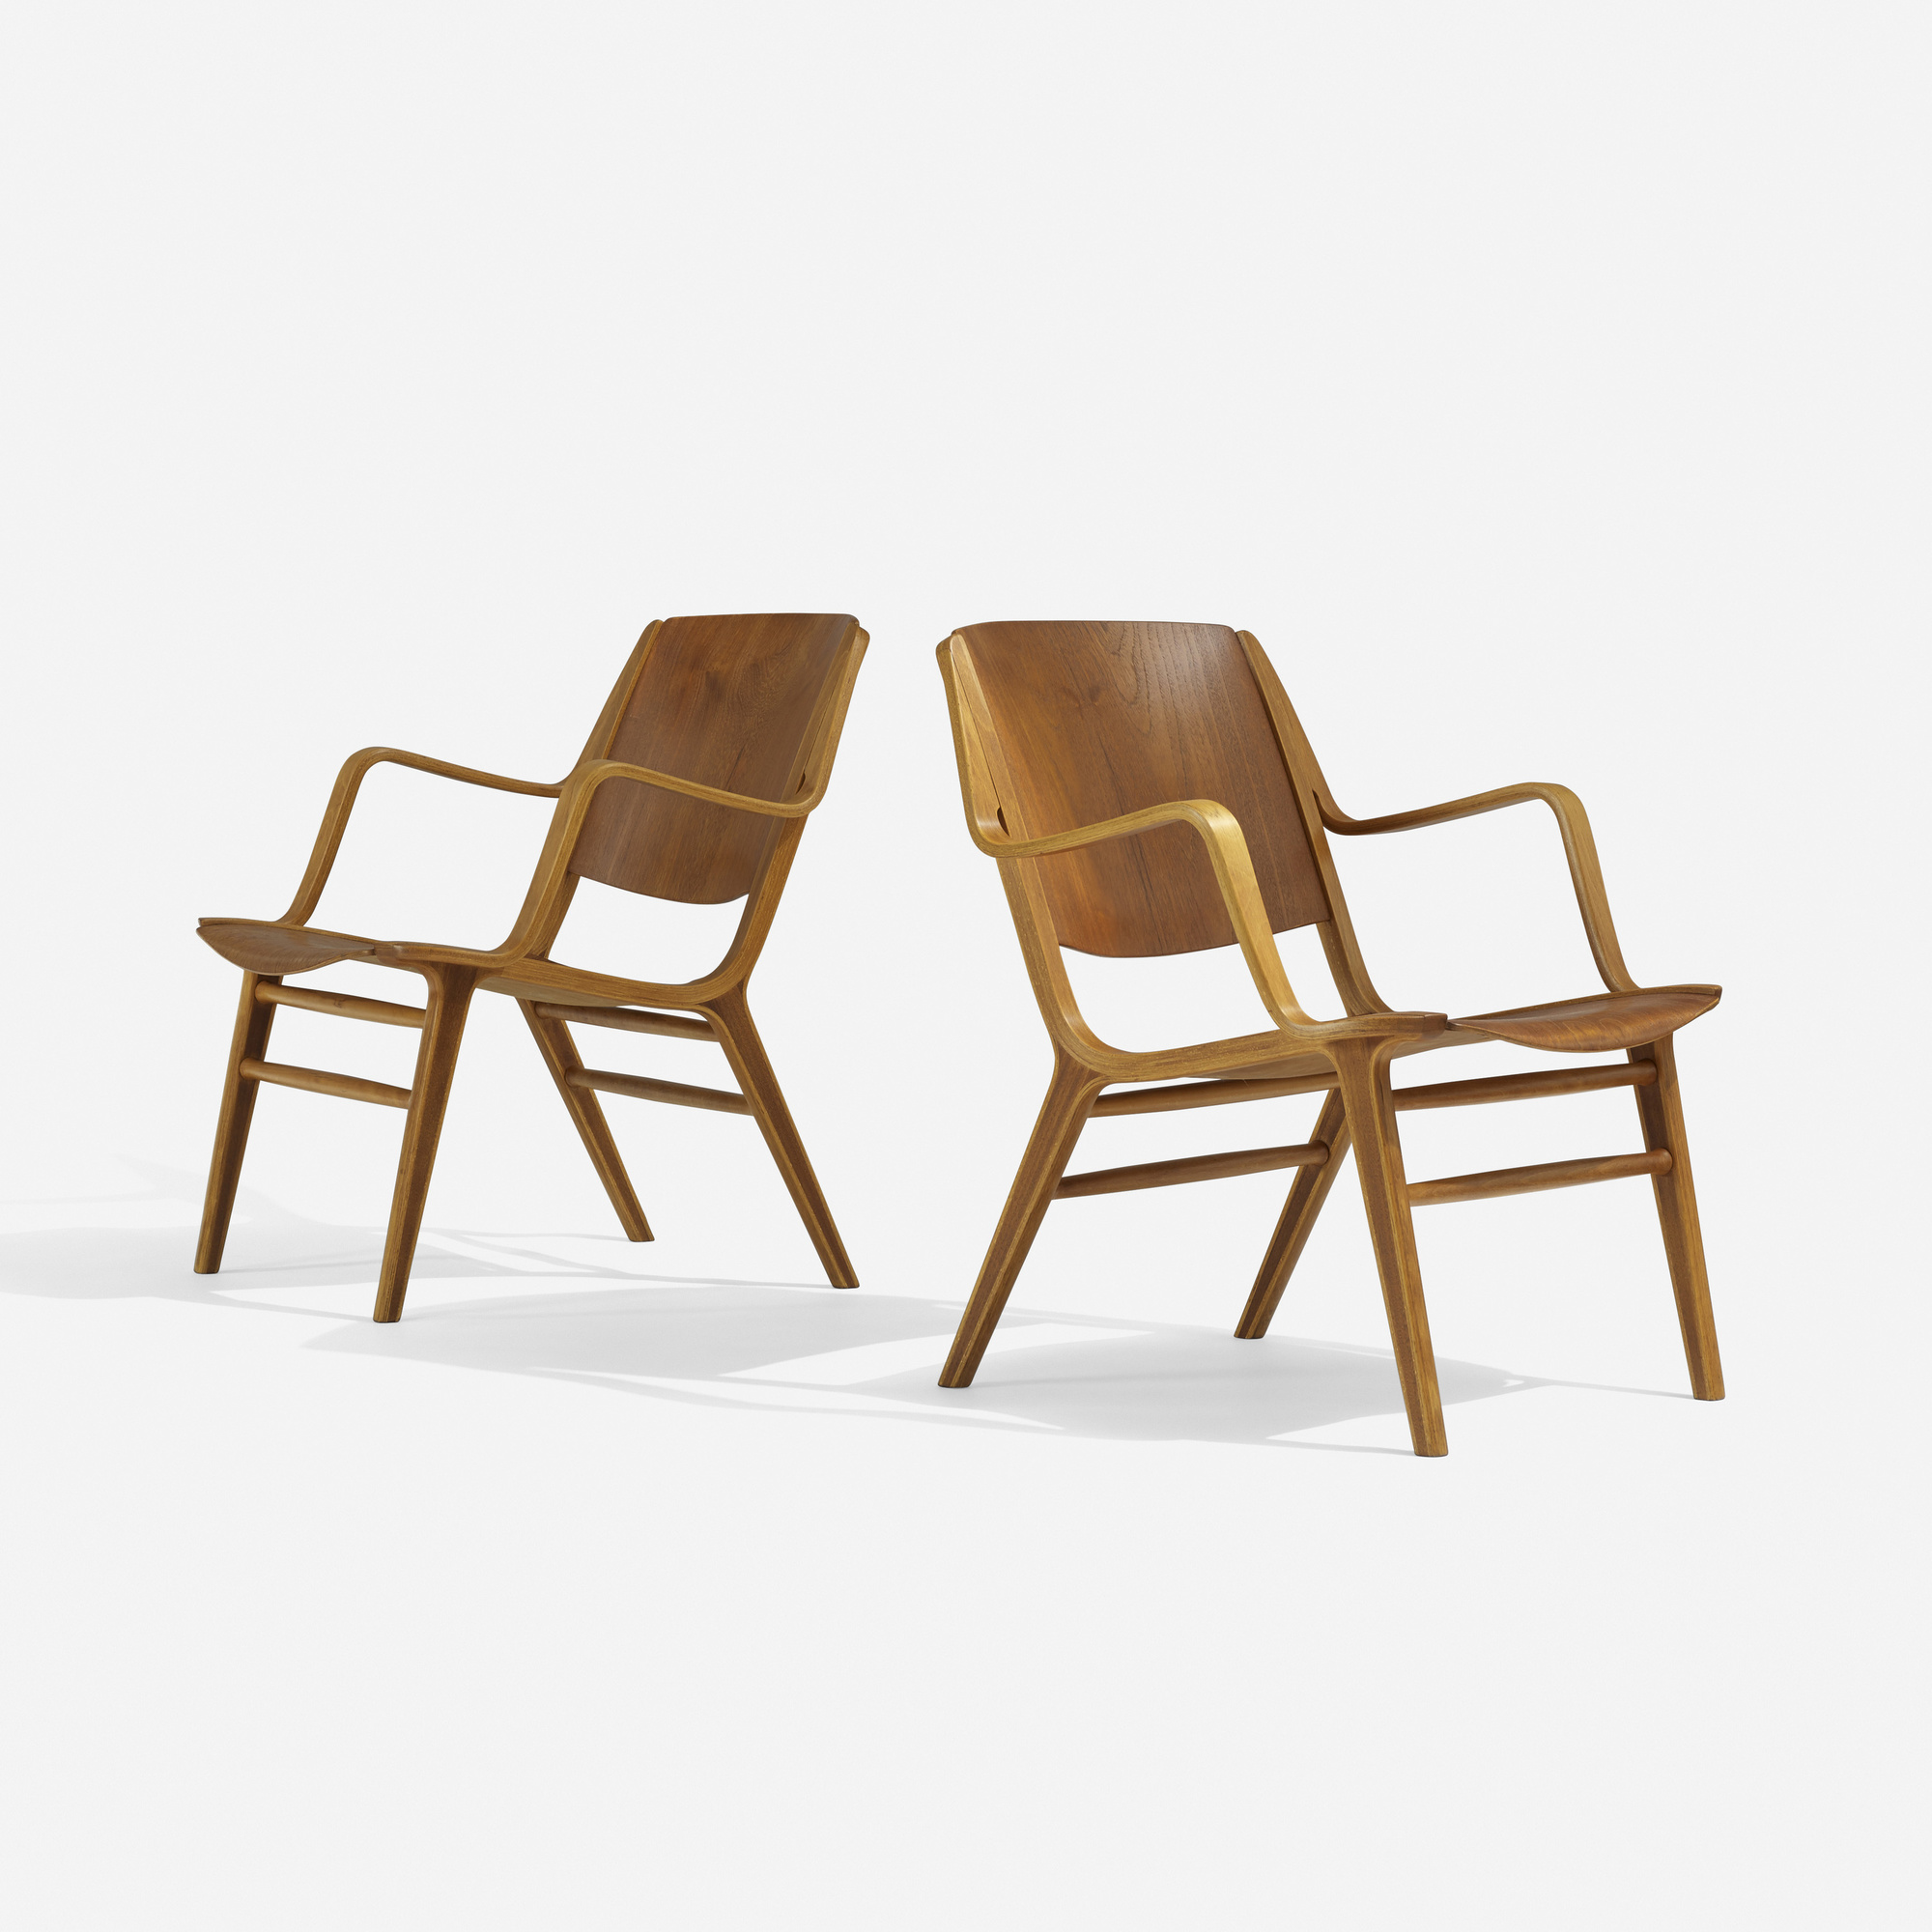 143: Peter Hvidt and Orla Mølgaard-Nielsen / Ax chairs, pair (1 of 3)